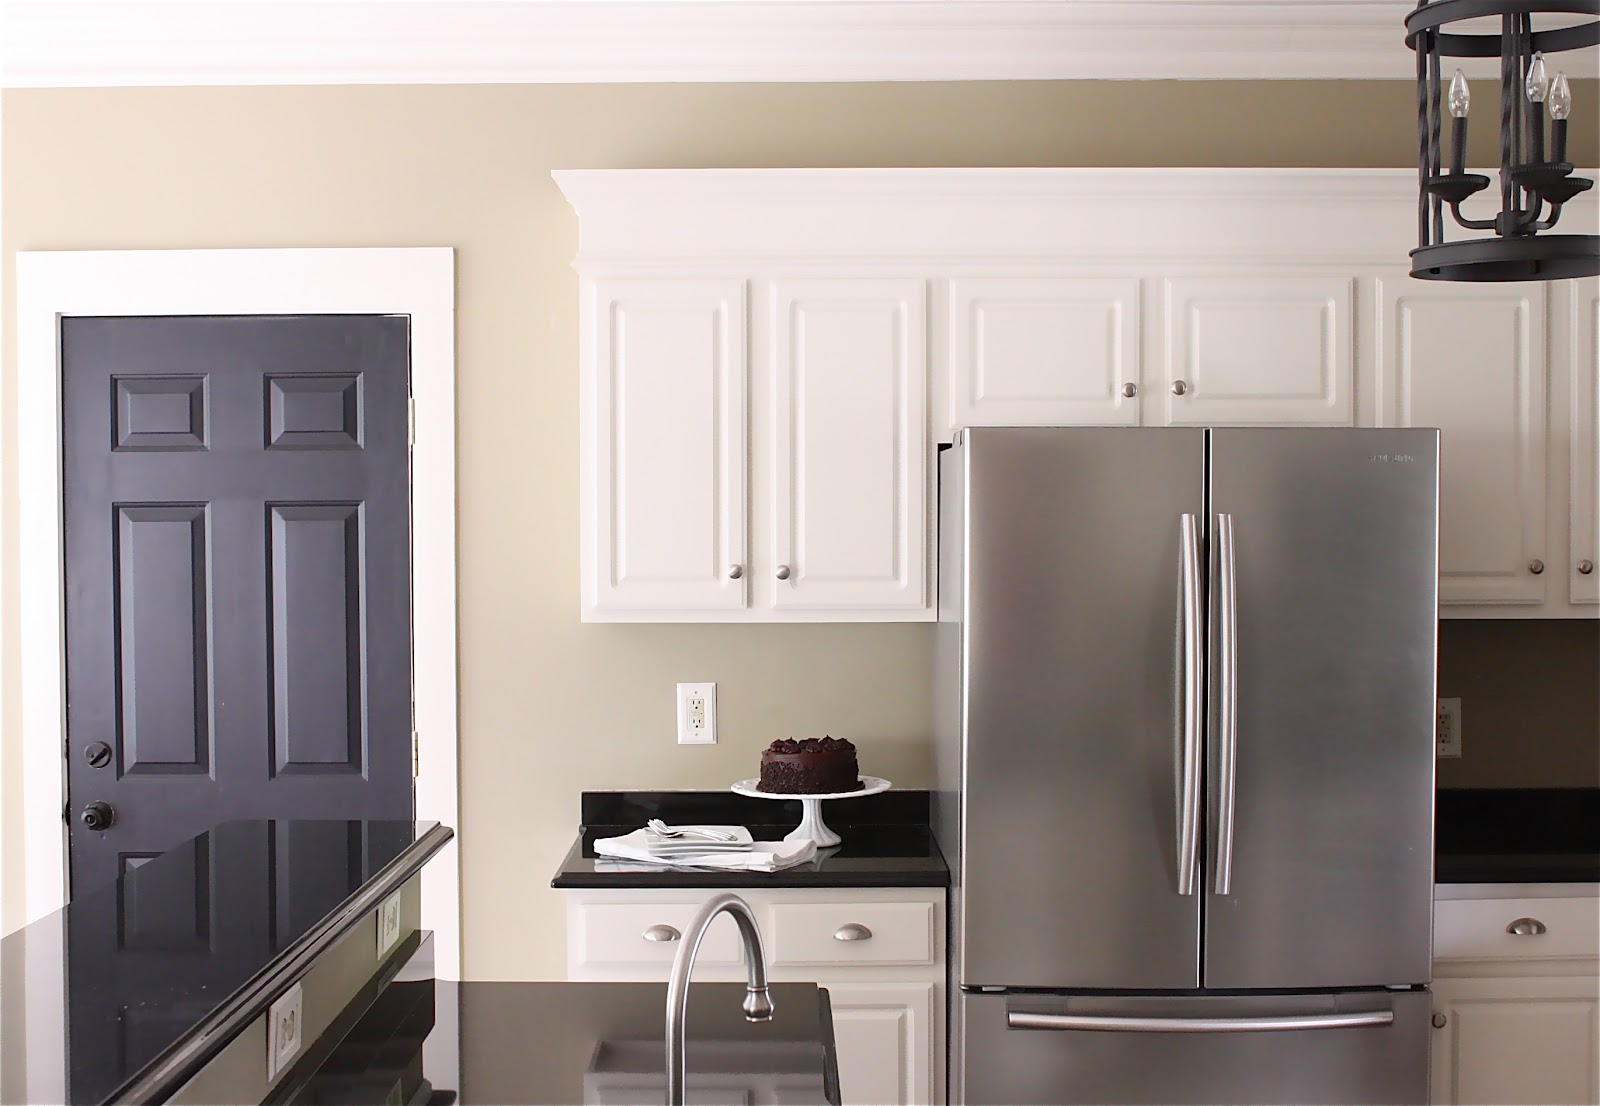 paint kitchen cabinets white kitchen painting ideas kitchen cabinets painted cabinetry the